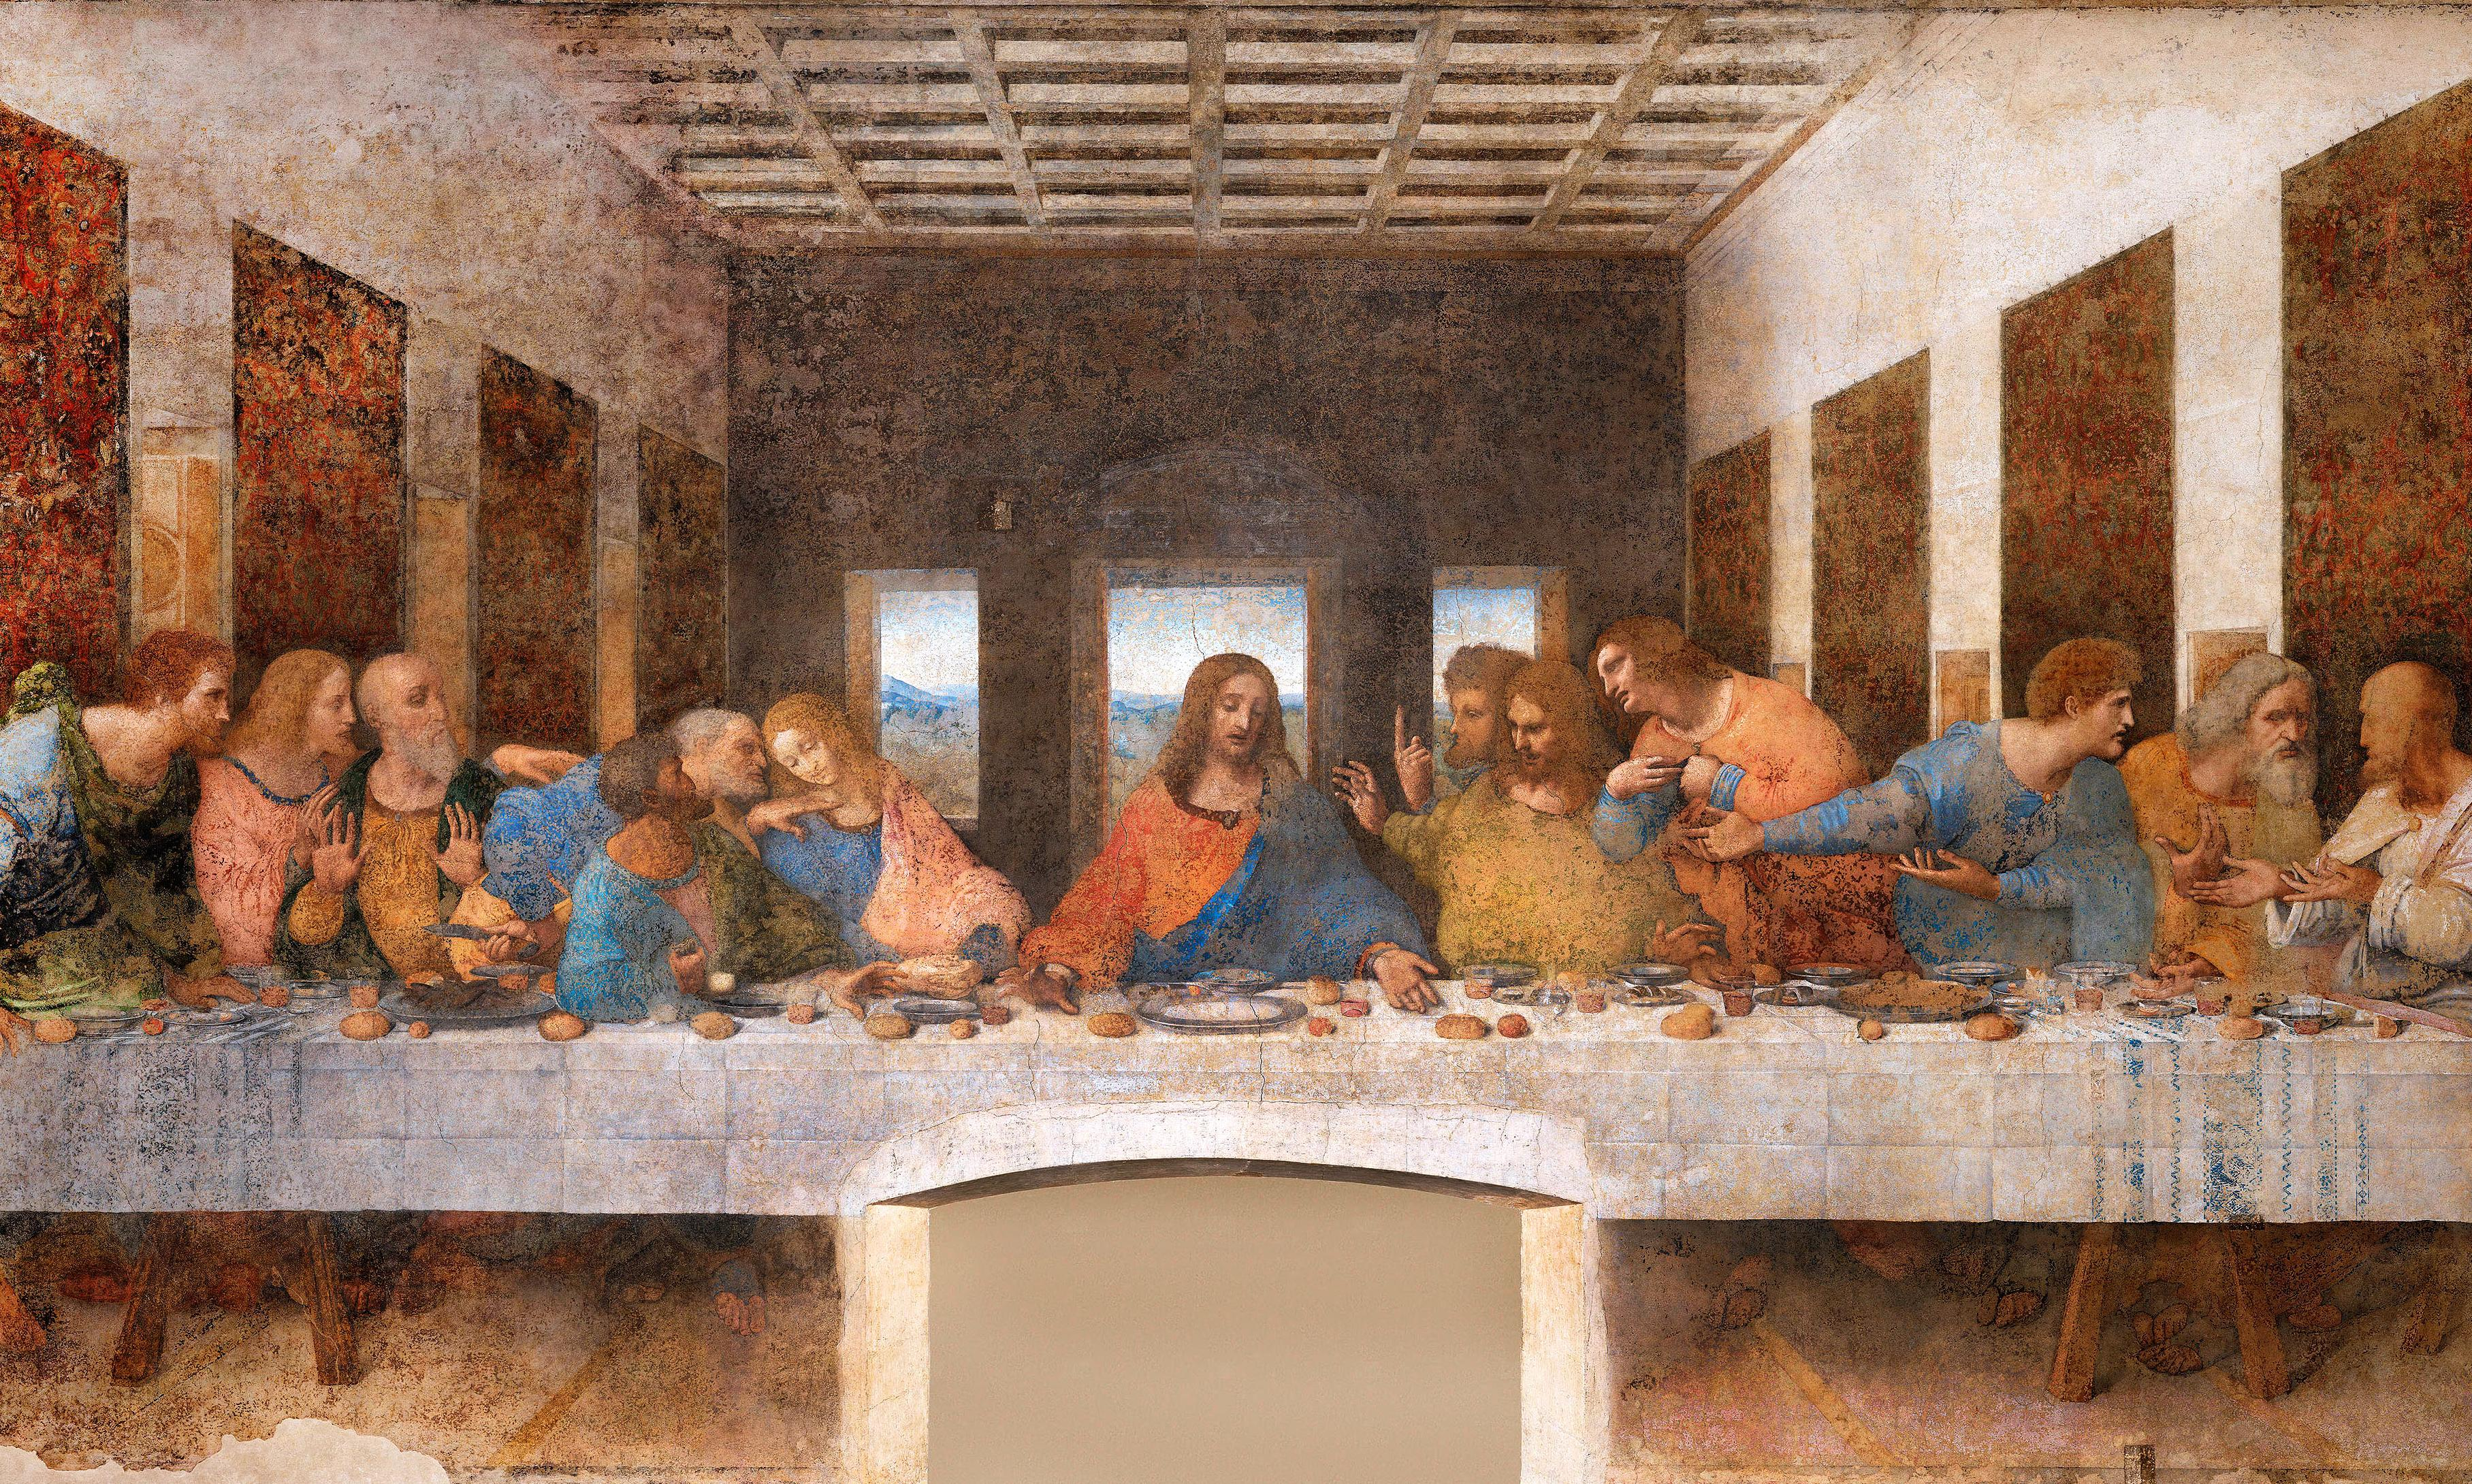 Chile bishop resigns after suggesting there is a reason the Last Supper had no women